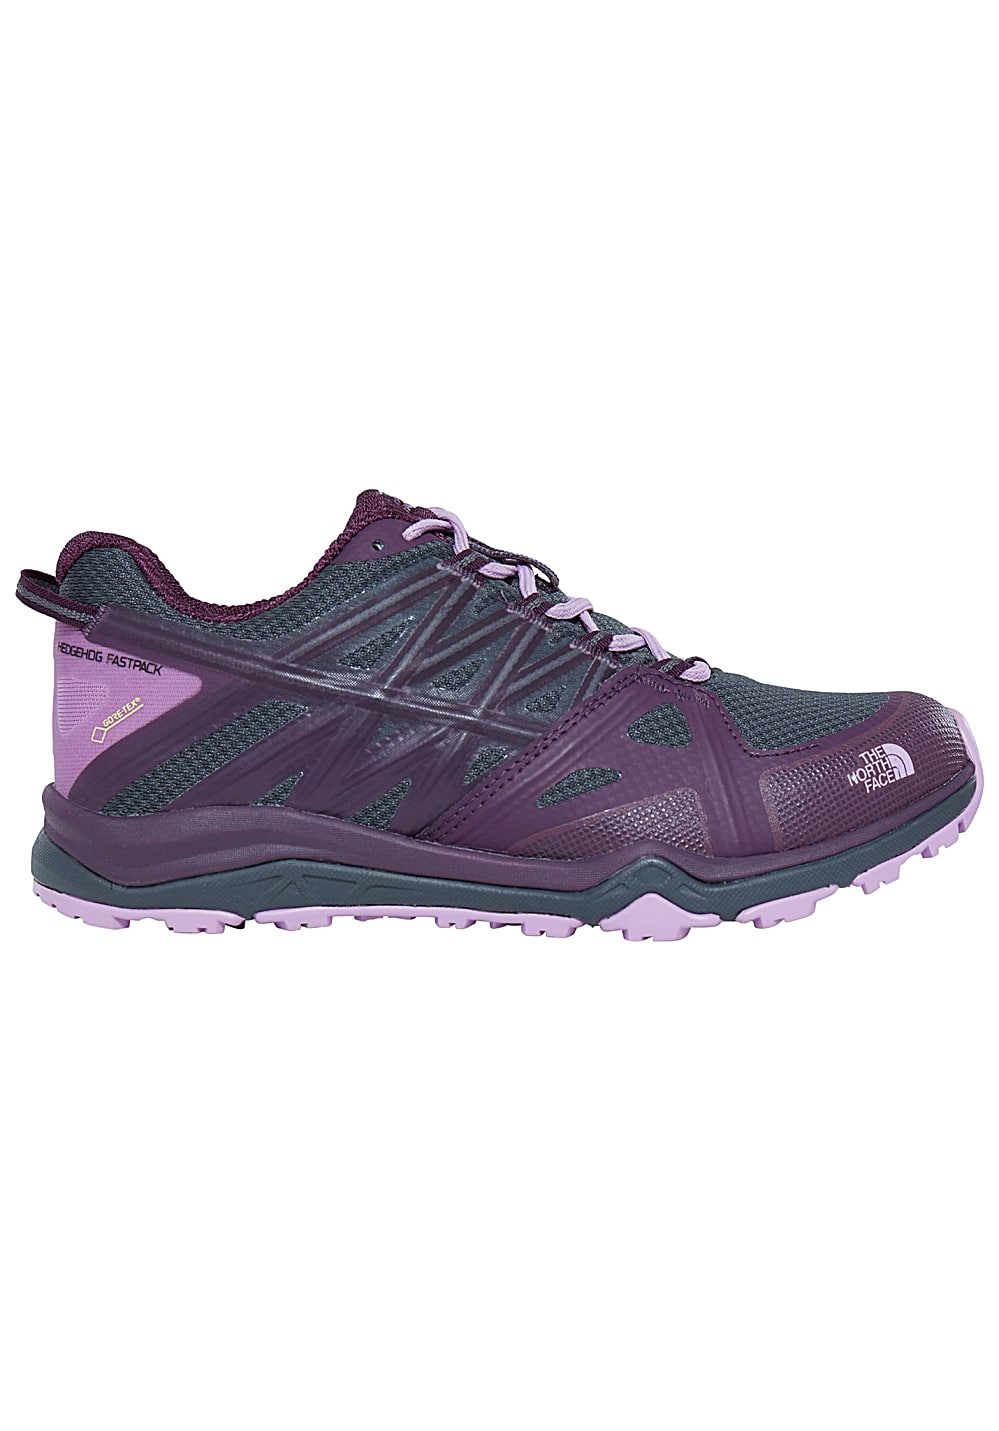 The North Face Hh Fp Lite II GTX - Trekkingschuhe für Damen Lila